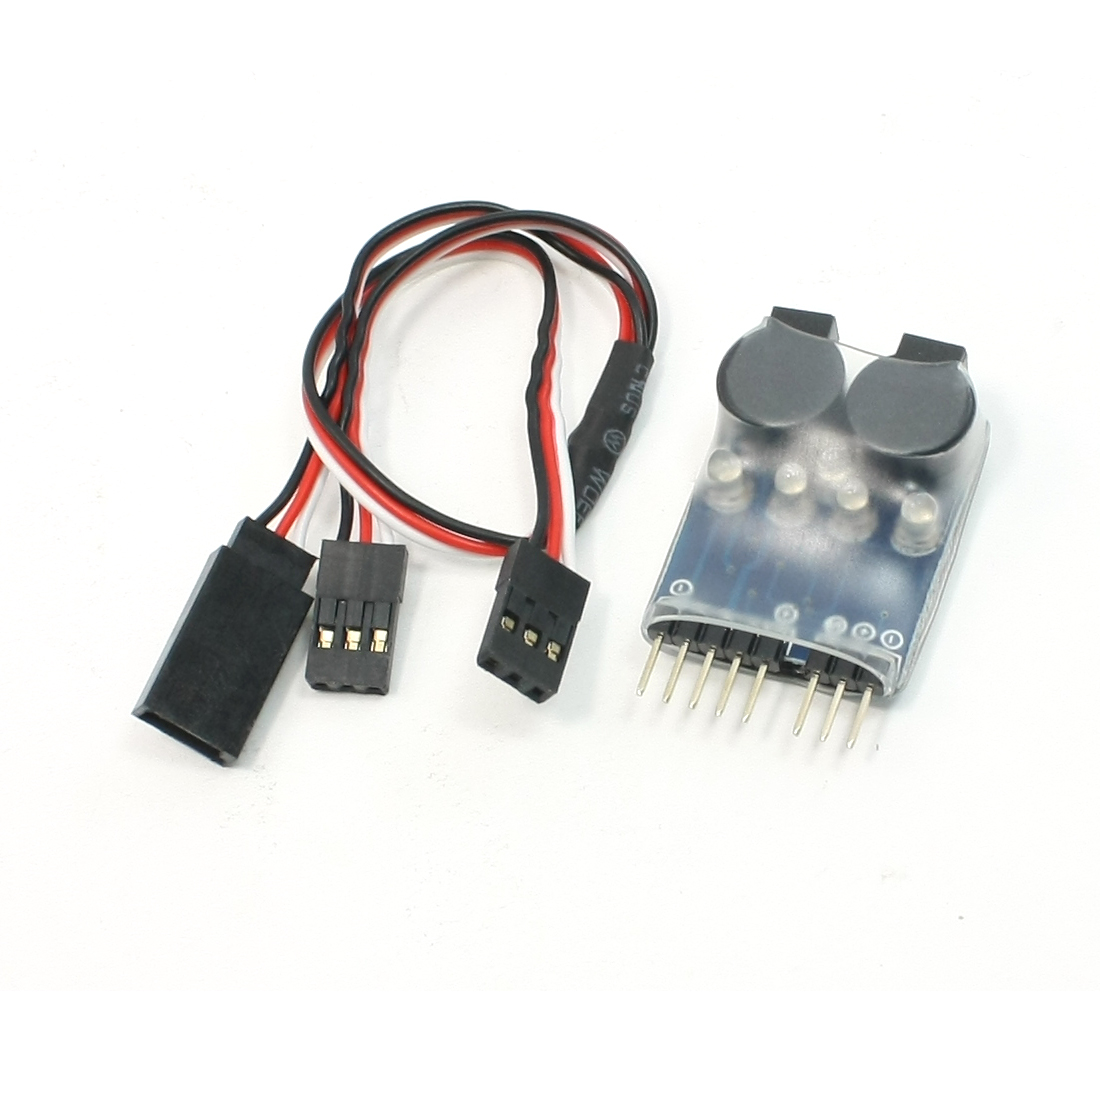 Low Voltage 2s-4s Lipo Battery Buzzer Alarm Indicator for Models